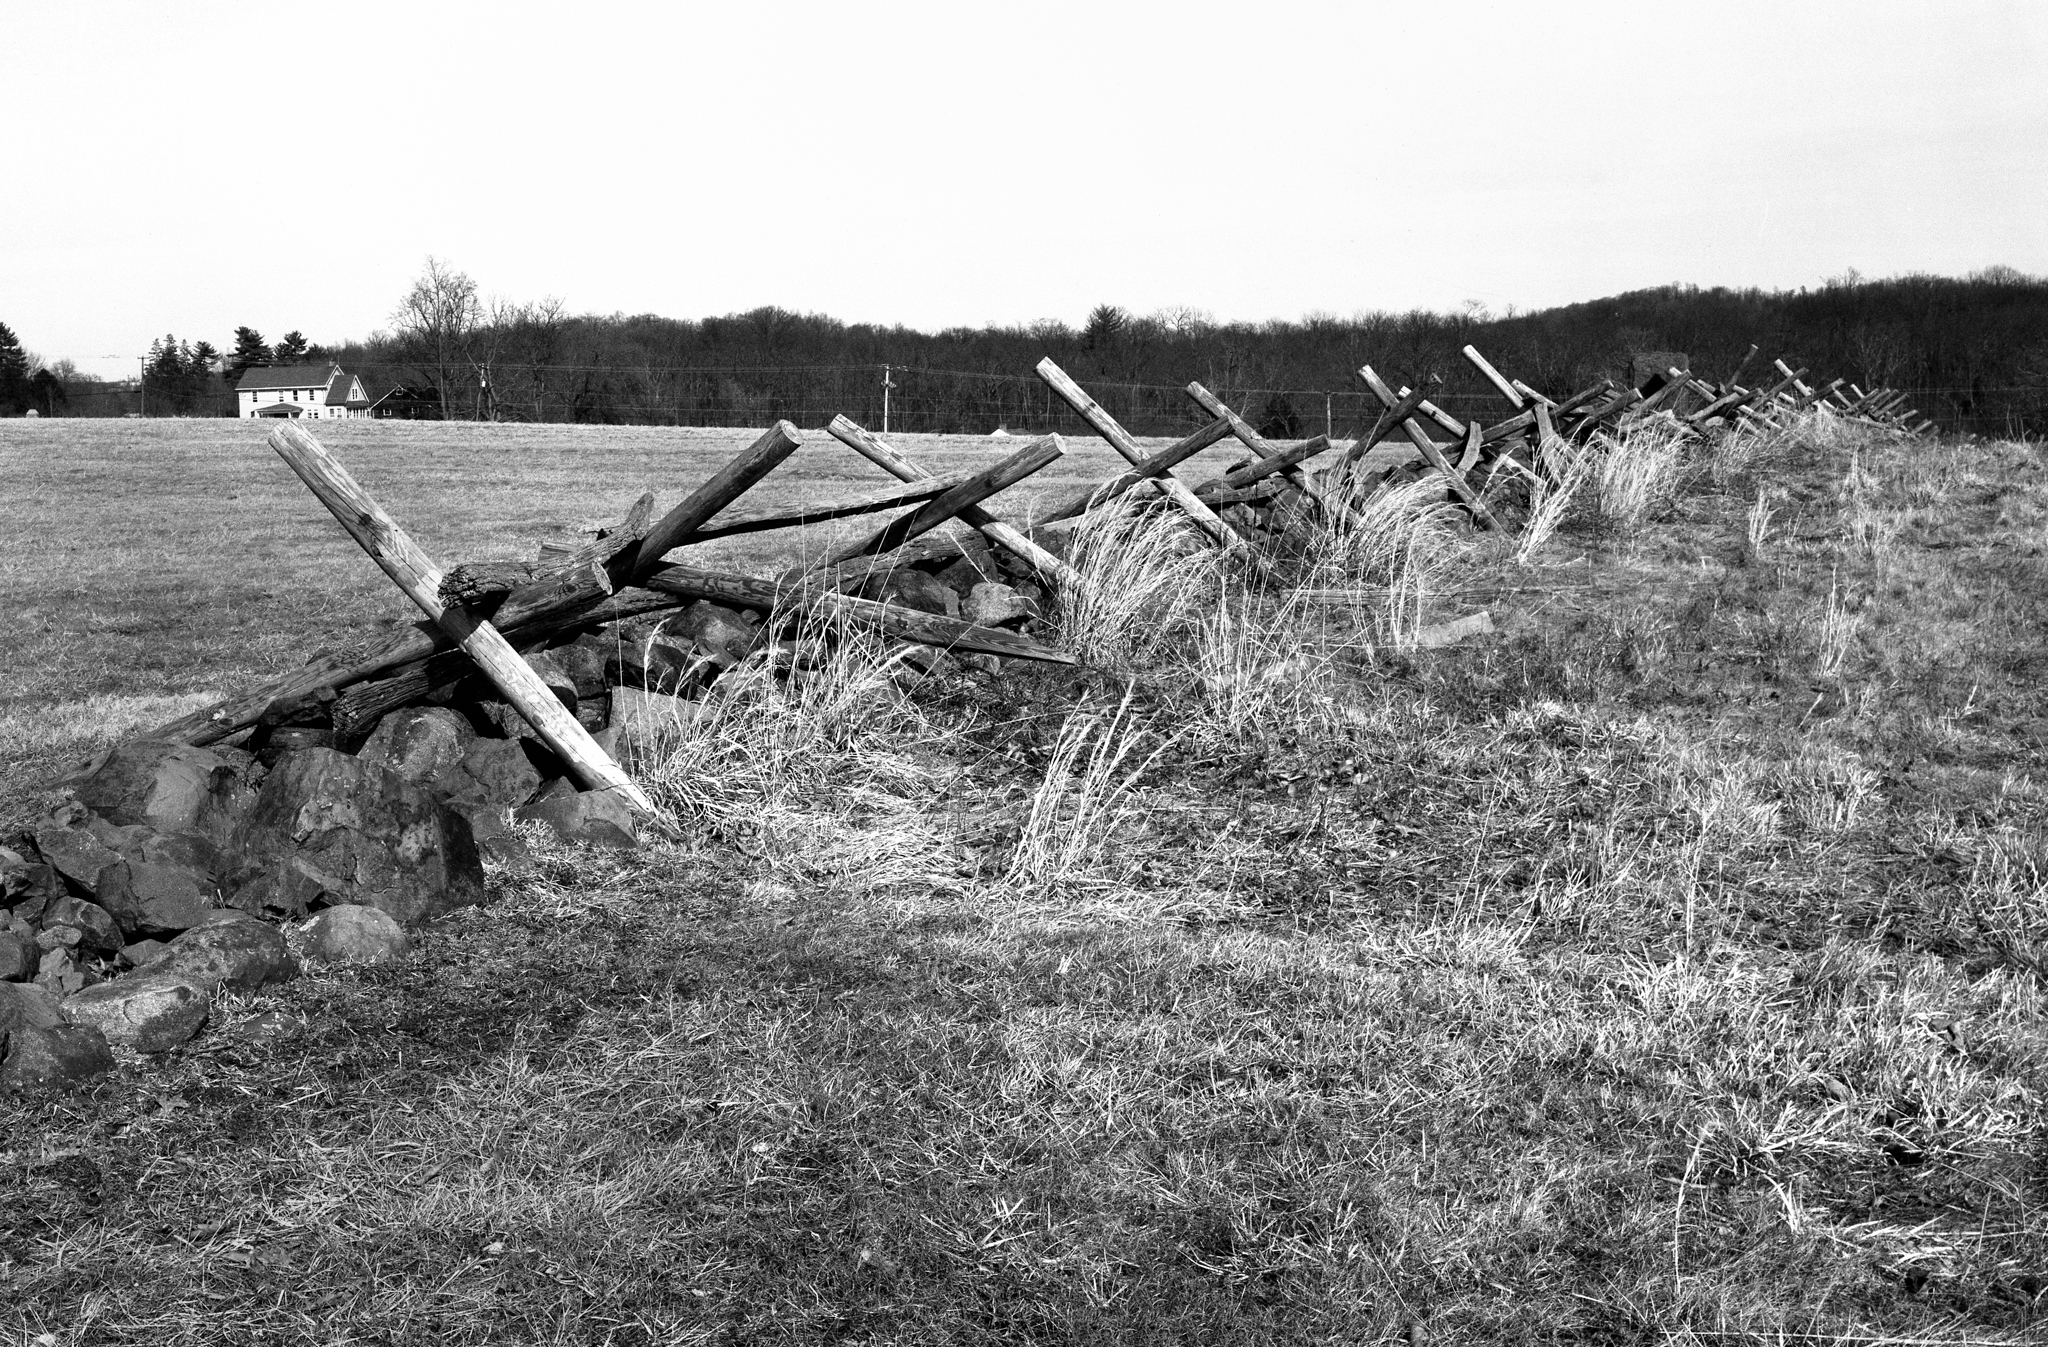 4x5_for_365_project_078_Gettysburg_fence.jpg